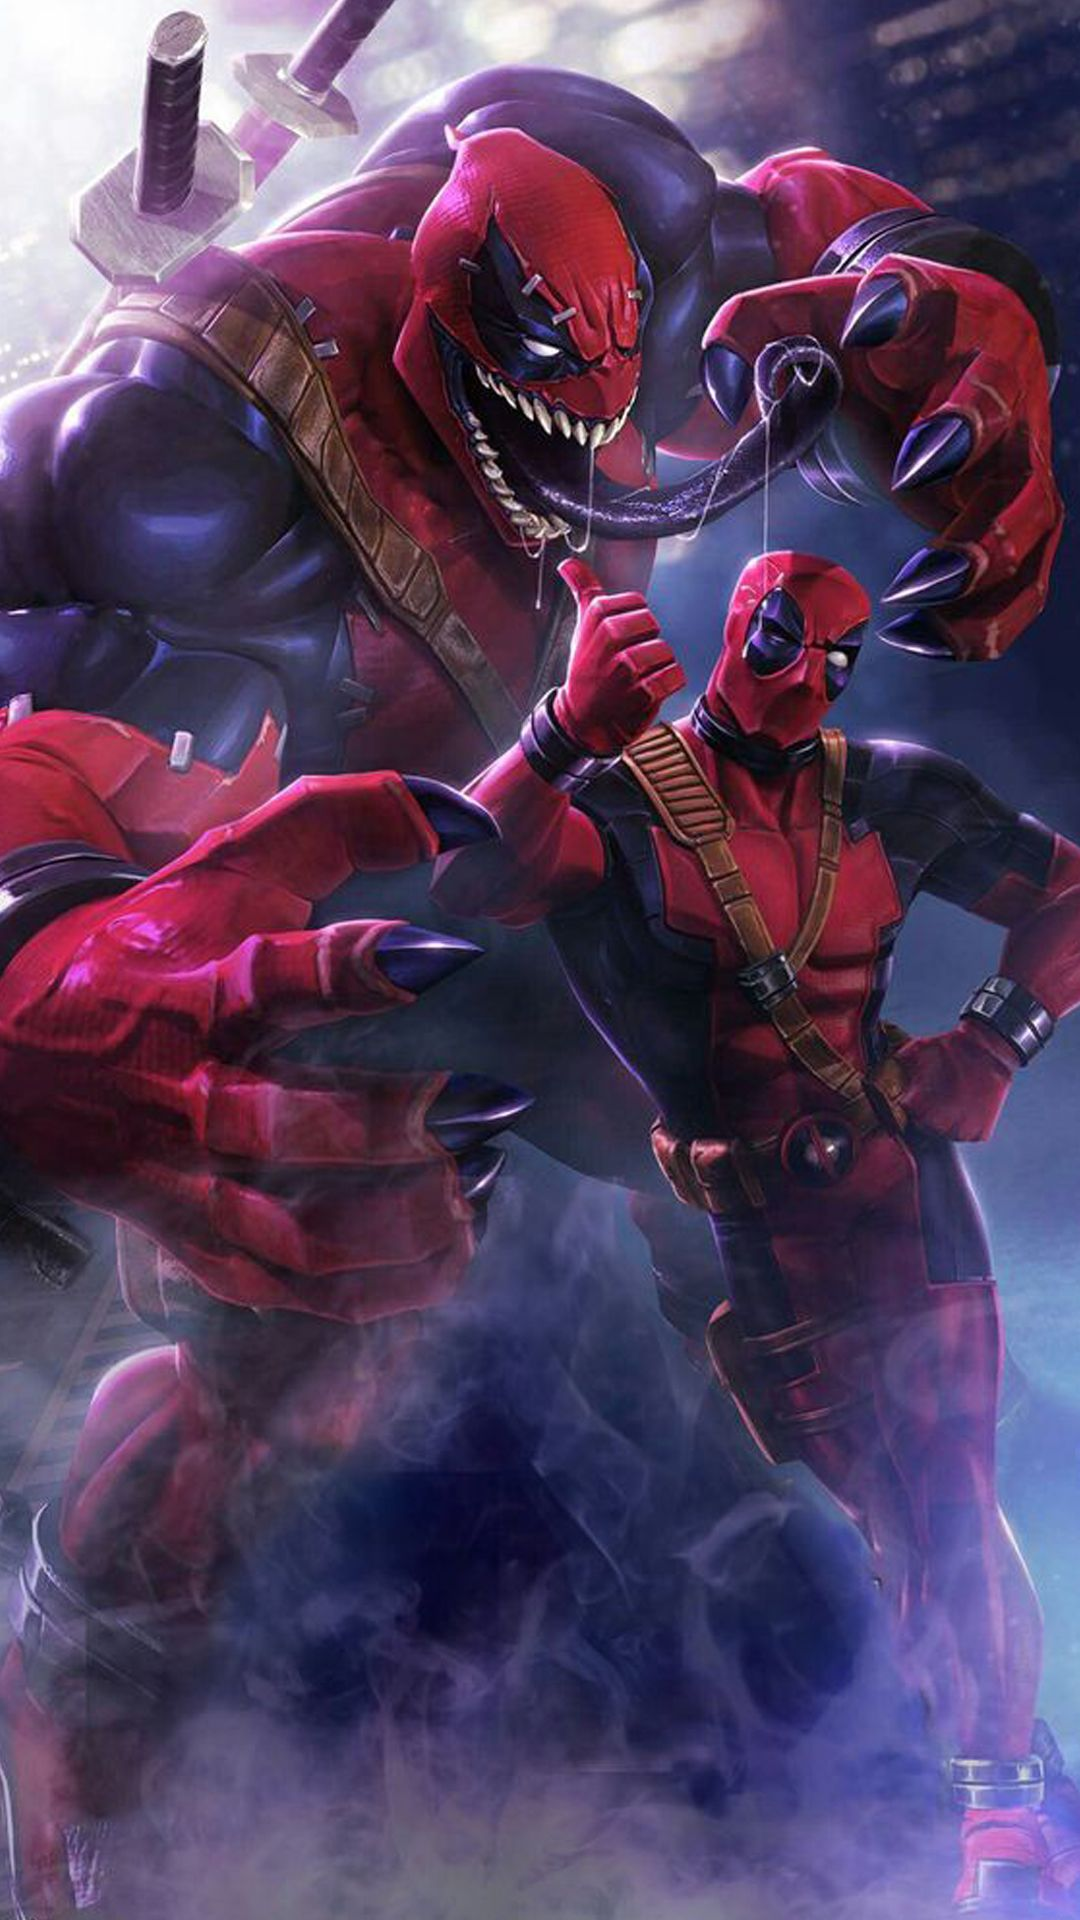 Deadpool Venom Picture For Mobile Phone Wallpaper Hd Wallpapers Wallpapers Download High Resolution Wallpapers Avengers Wallpaper Deadpool Art Deadpool Wallpaper